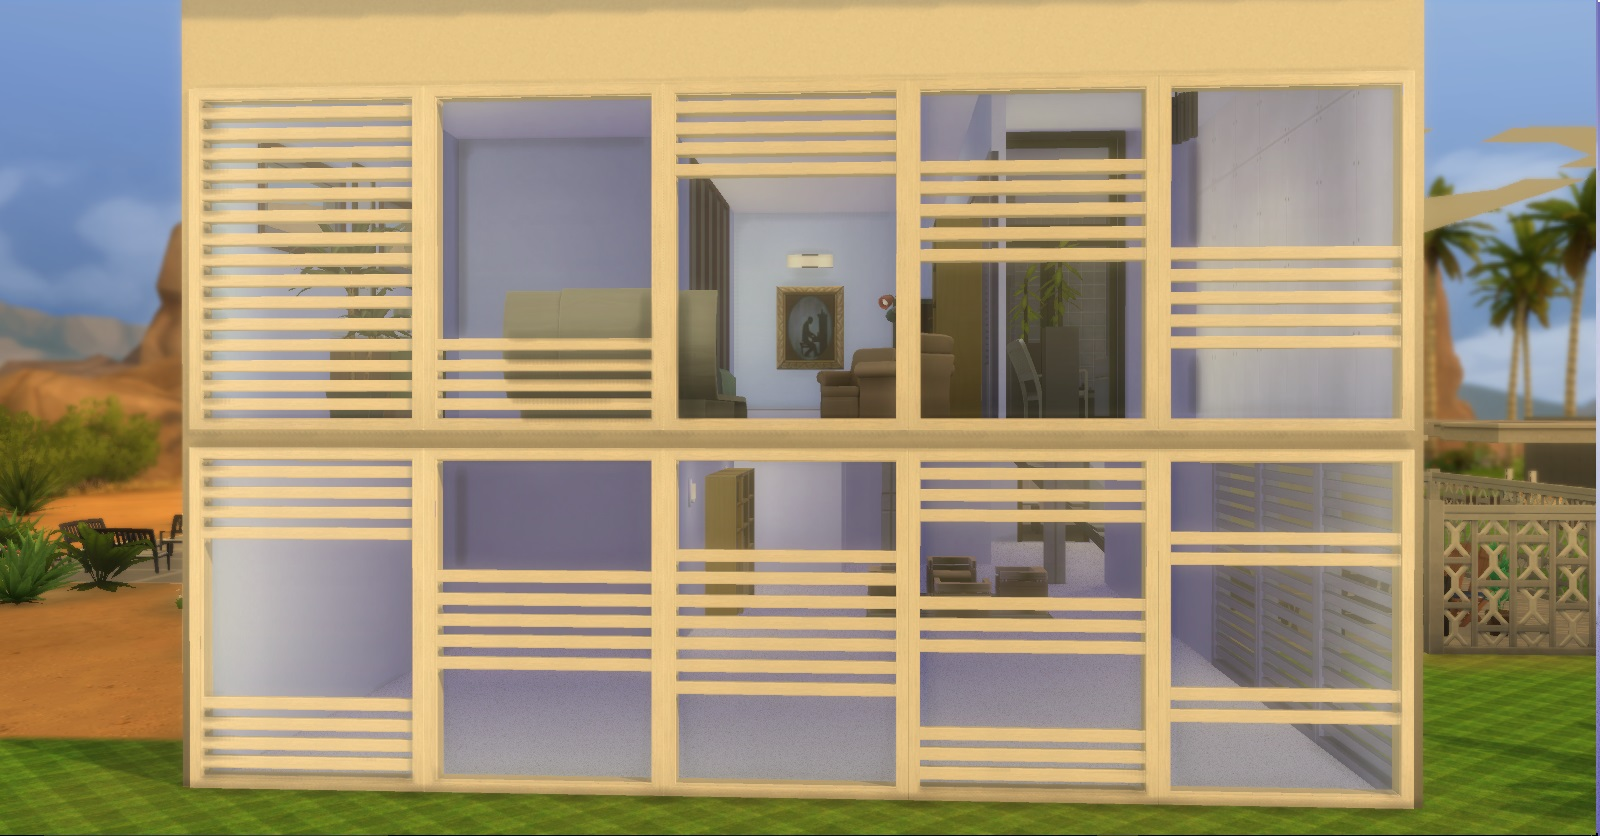 Mod the sims ap modern windows for Window design 4 by 4